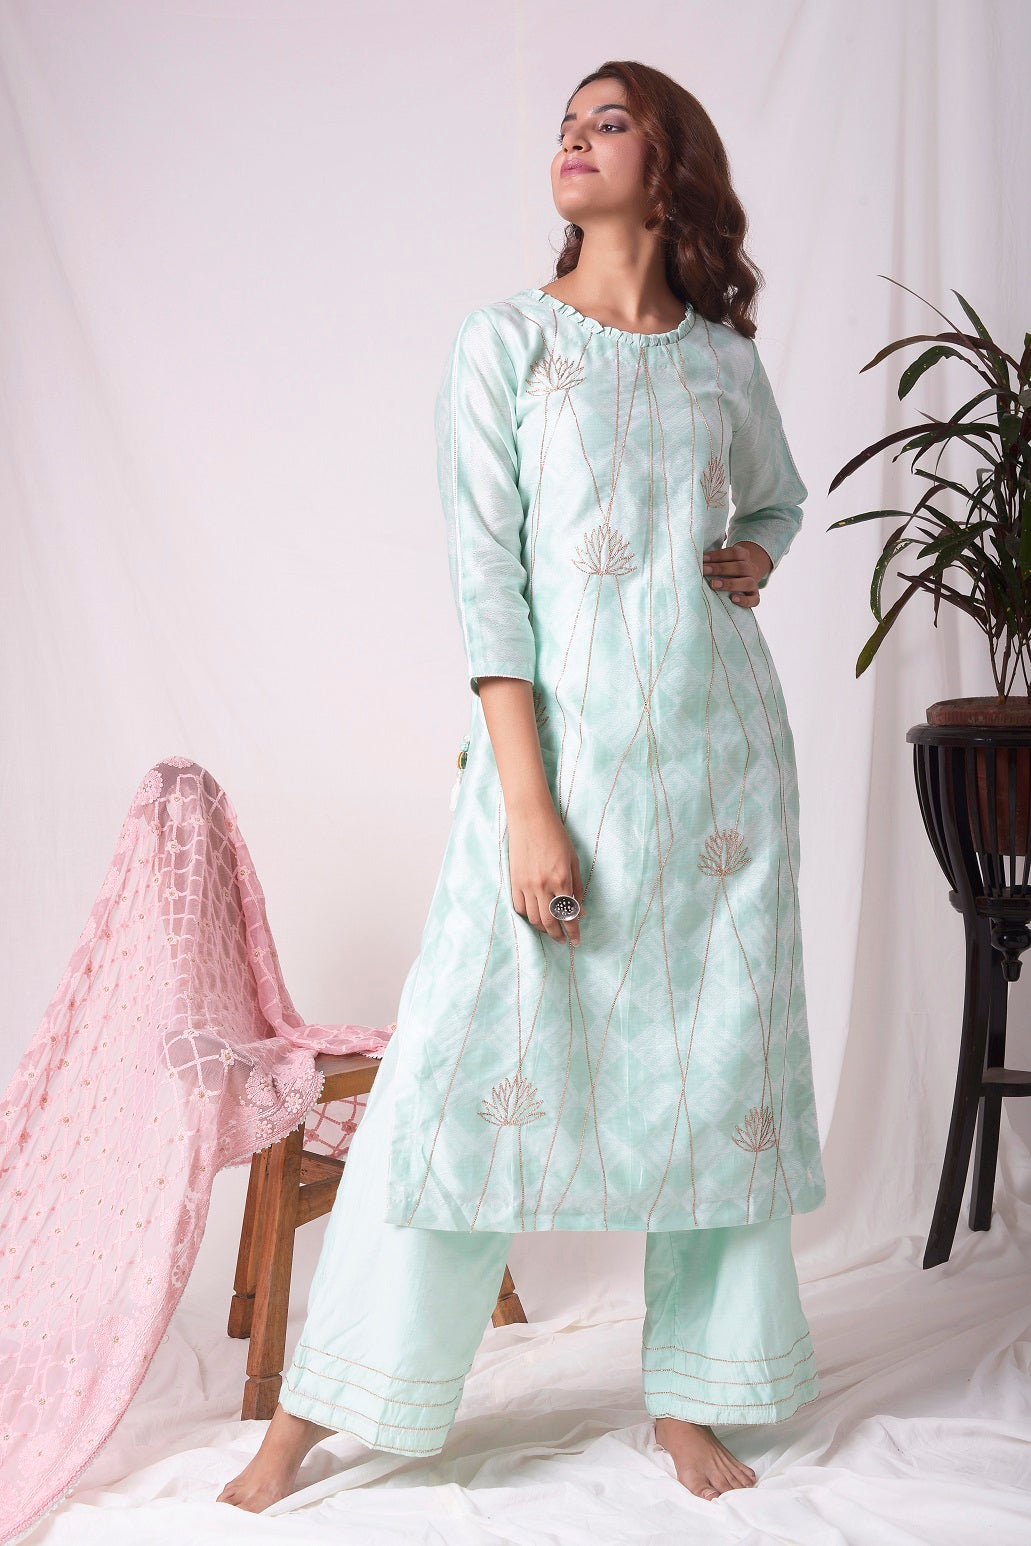 Buy aqua blue chanderi suit online in USA with patti work. Be the talk of parties and weddings with exquisite designer gowns, sharara suits, Anarkali suits, salwar suits from Pure Elegance Indian clothing store in USA. Shop online now.-full view-3